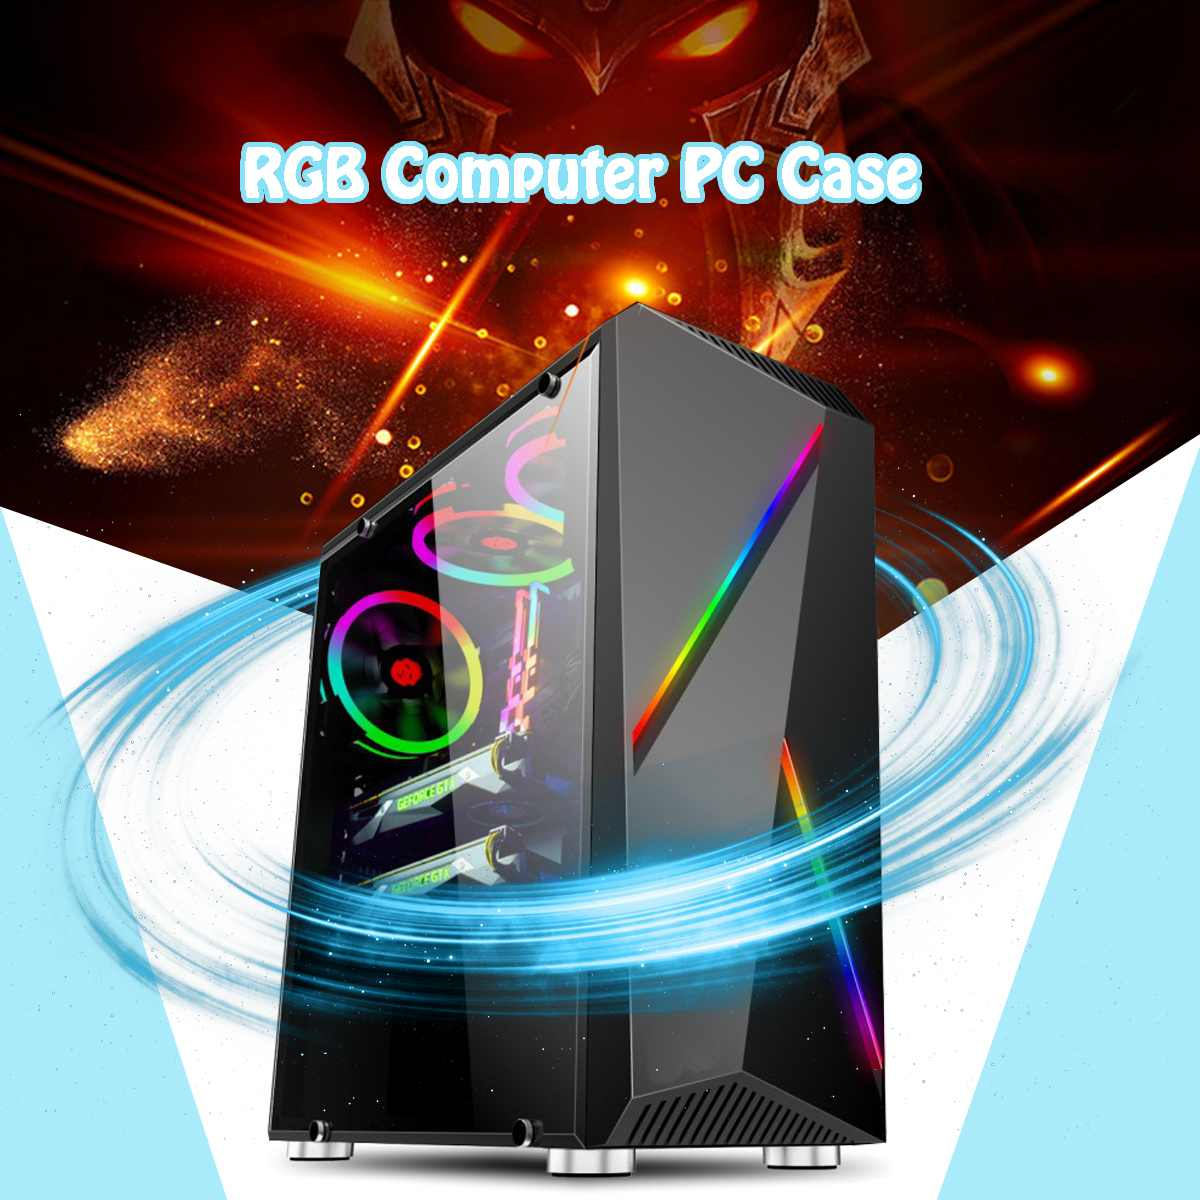 LEORY Transparente Computer PC Case Gaming Tower ATX Audio with 2 RGB Color Changing Light Strips 350X170X420mmLEORY Transparente Computer PC Case Gaming Tower ATX Audio with 2 RGB Color Changing Light Strips 350X170X420mm